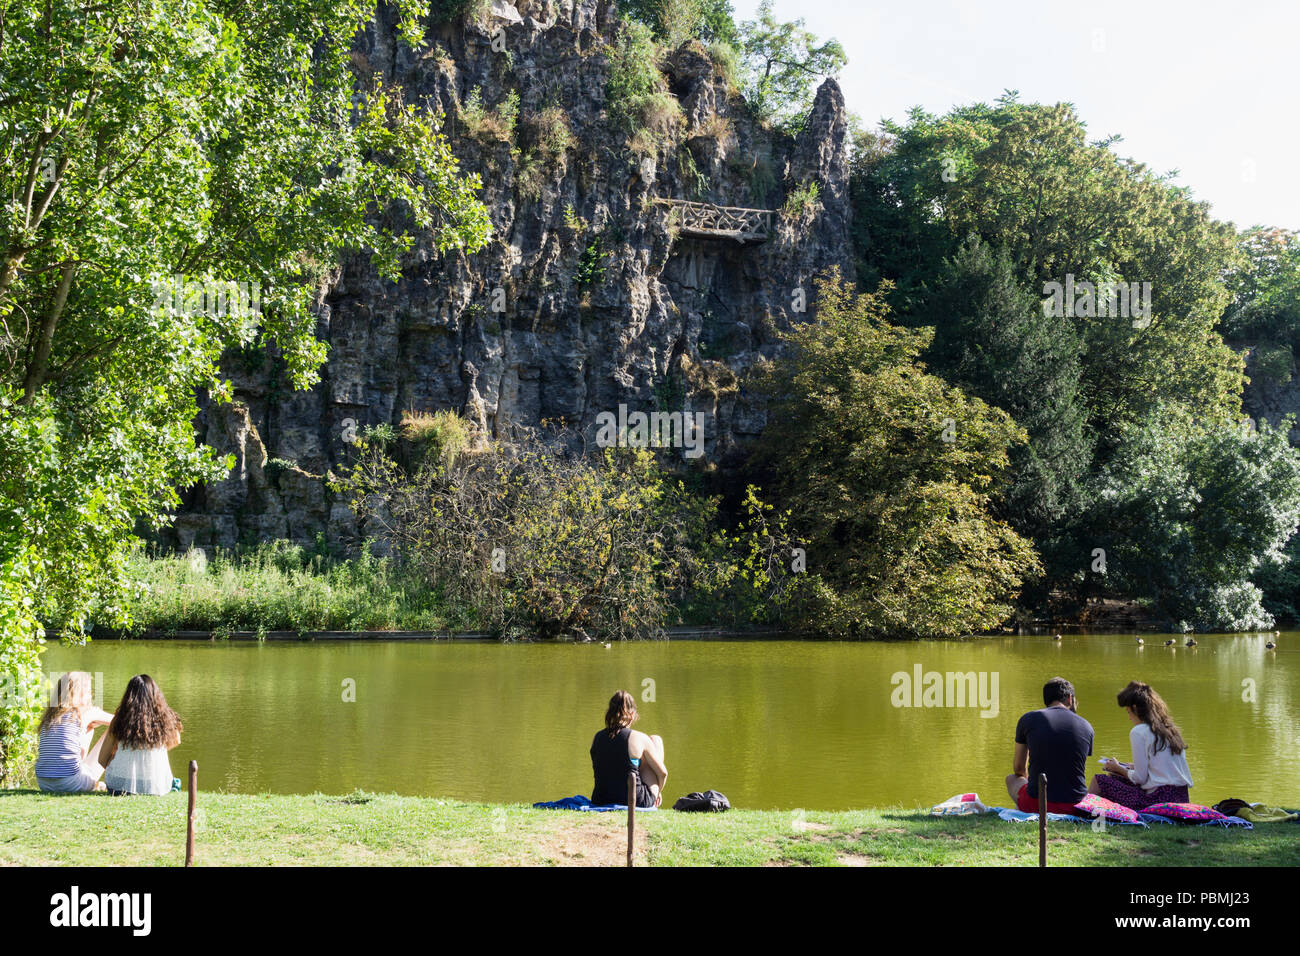 Paris park with lake - People relaxing near the lake at the Park des Buttes Chaumont in Paris, France, Europe. - Stock Image